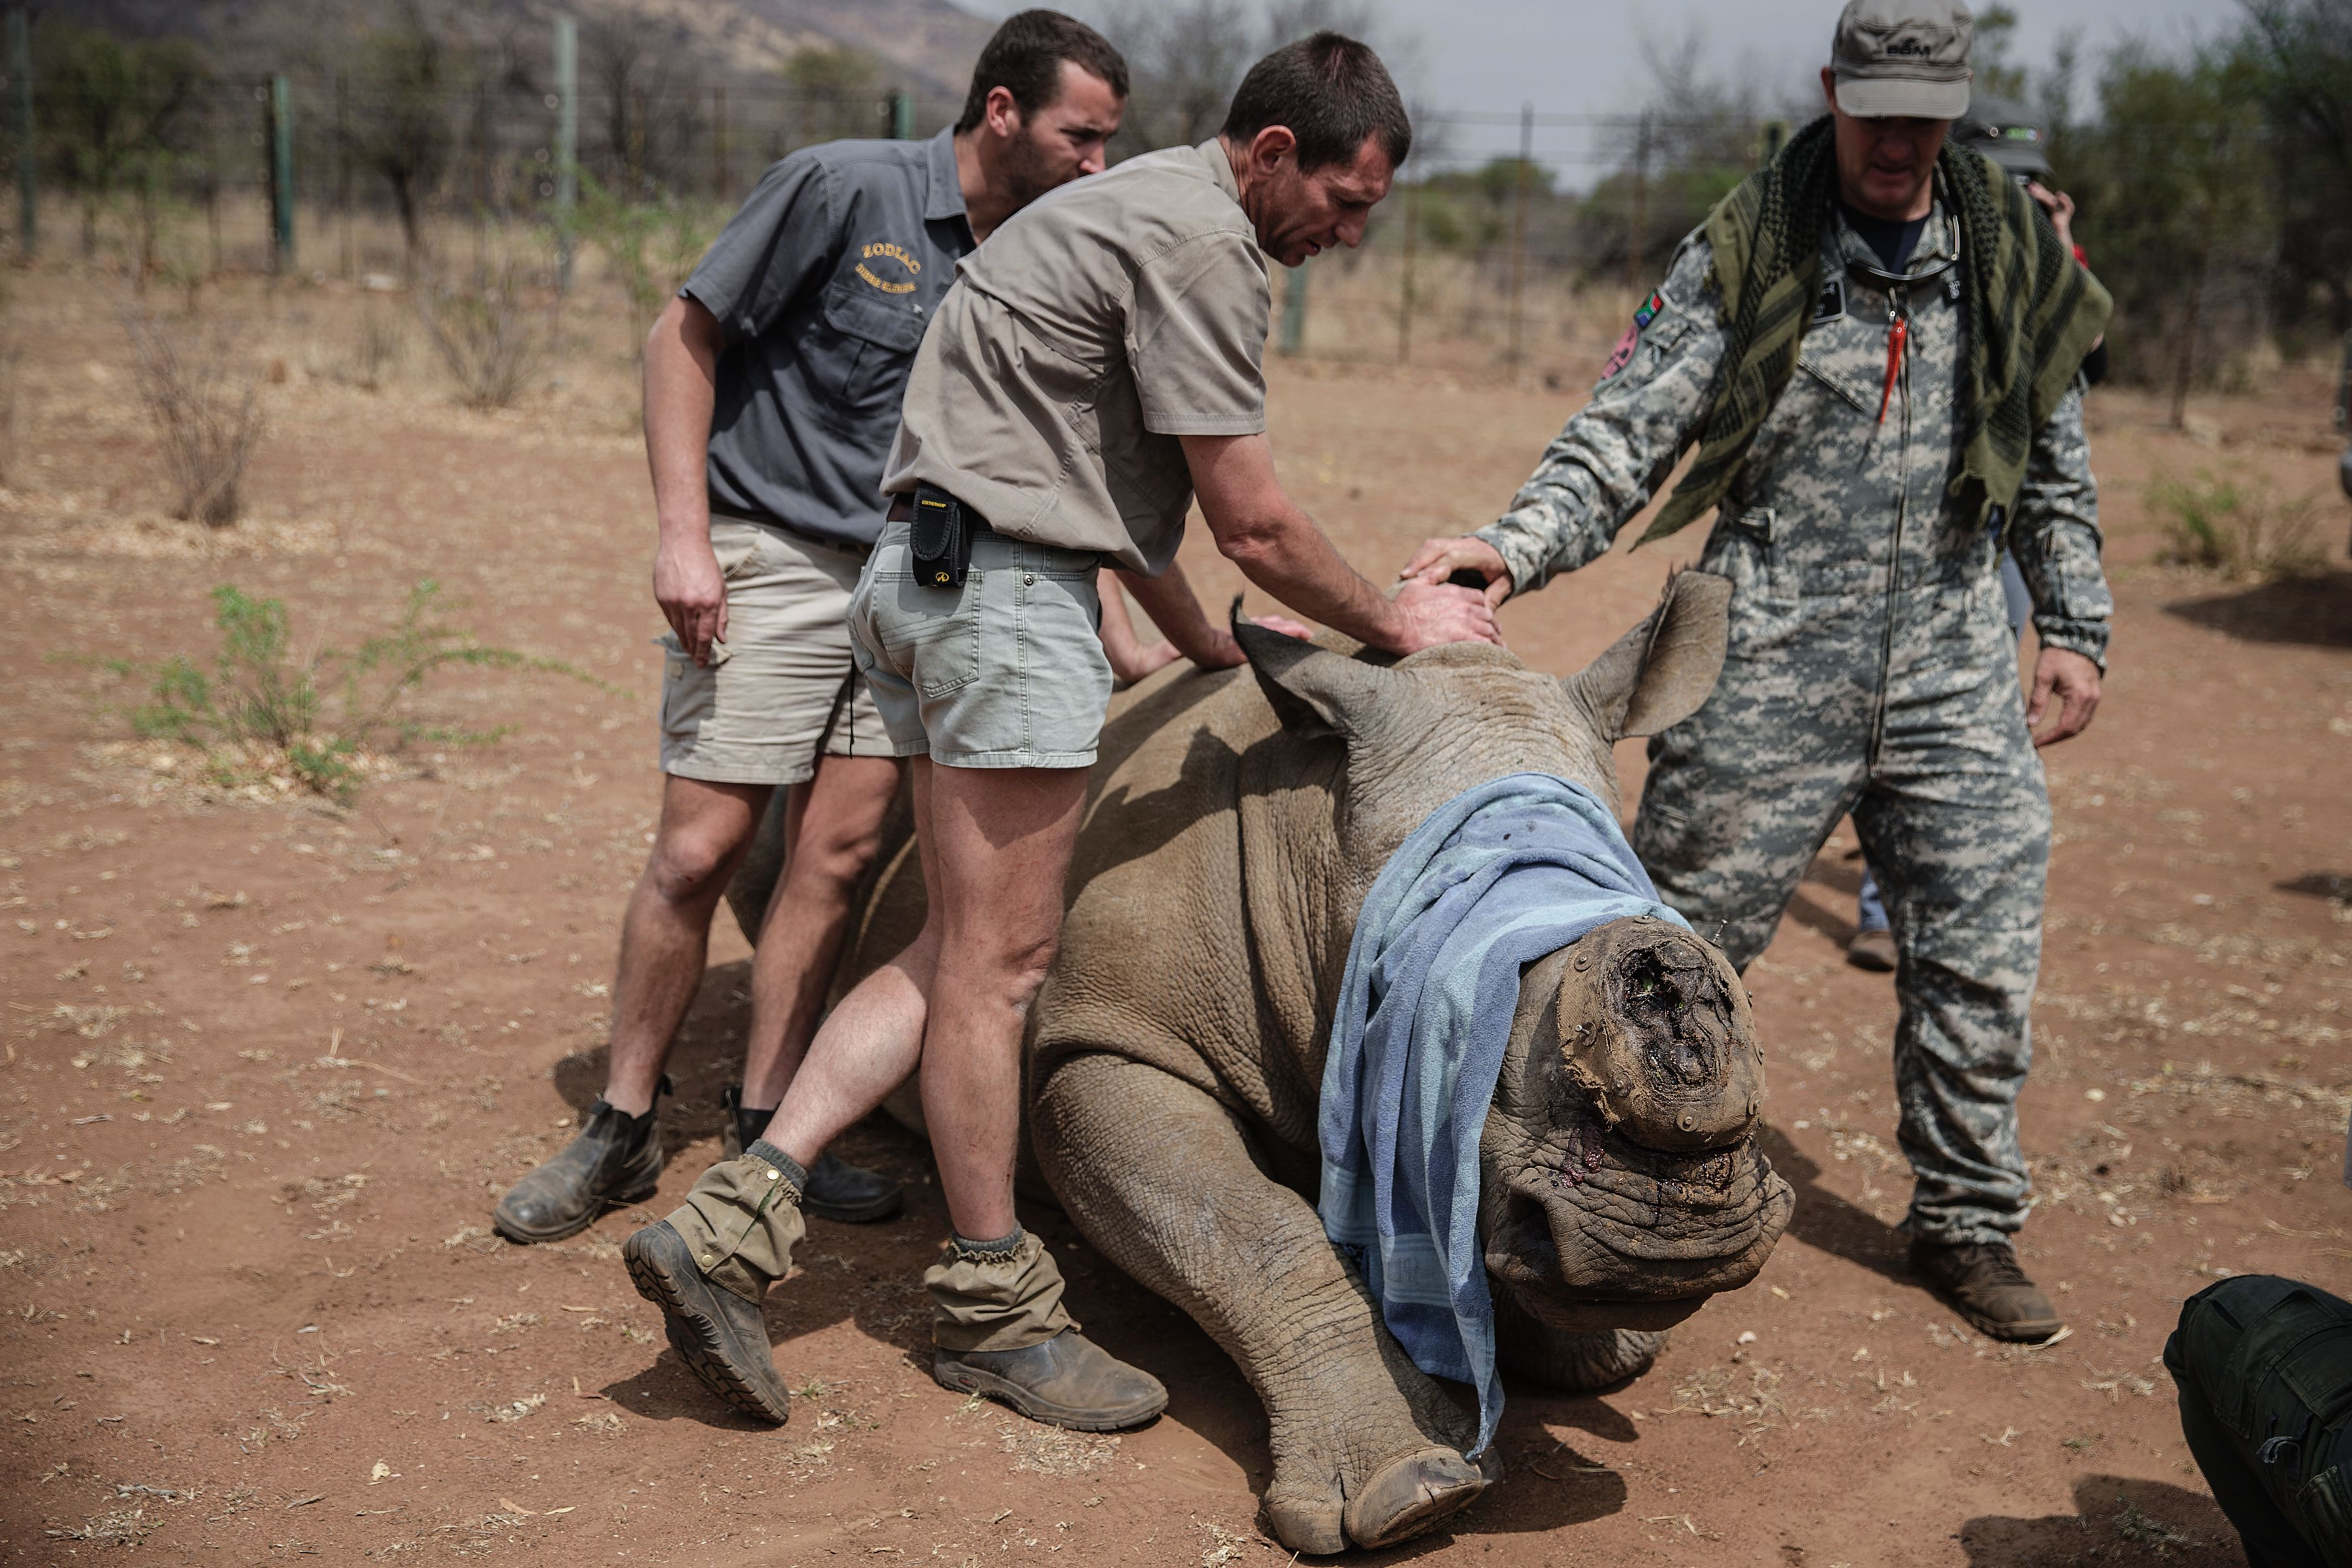 A veterinary from Saving the Survivors and RHINO911 crew attend to a previously wounded Rhino during an operation of RHINO911 Non Governamental Organization at the Pilanesberg National Park in the North West province, South Africa, on Sept. 19, 2016.